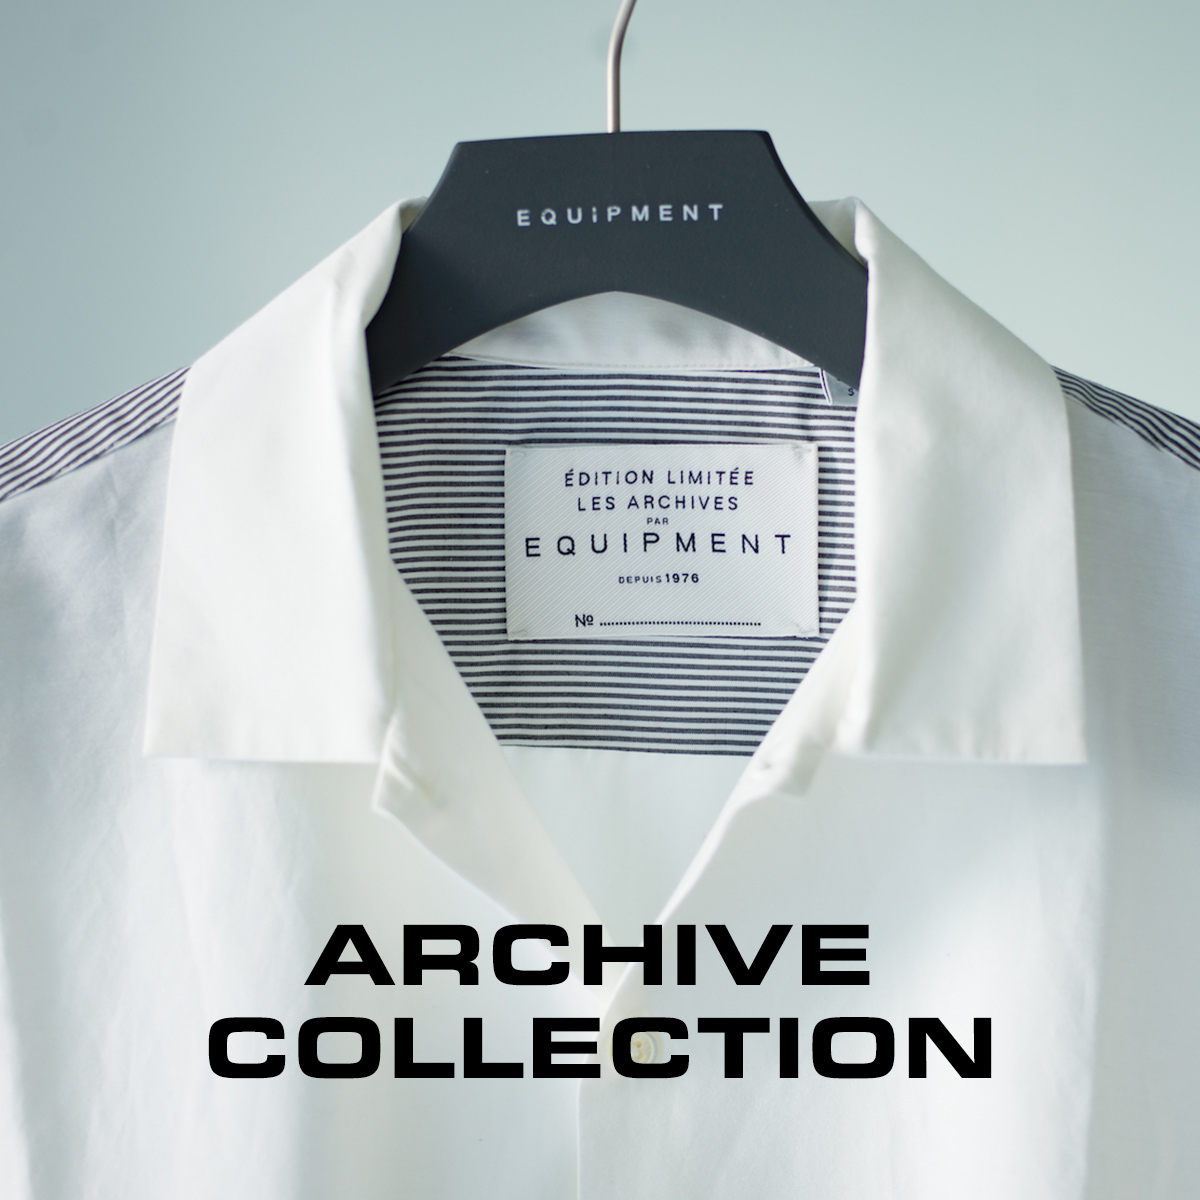 ARCHIVECOLLECTION